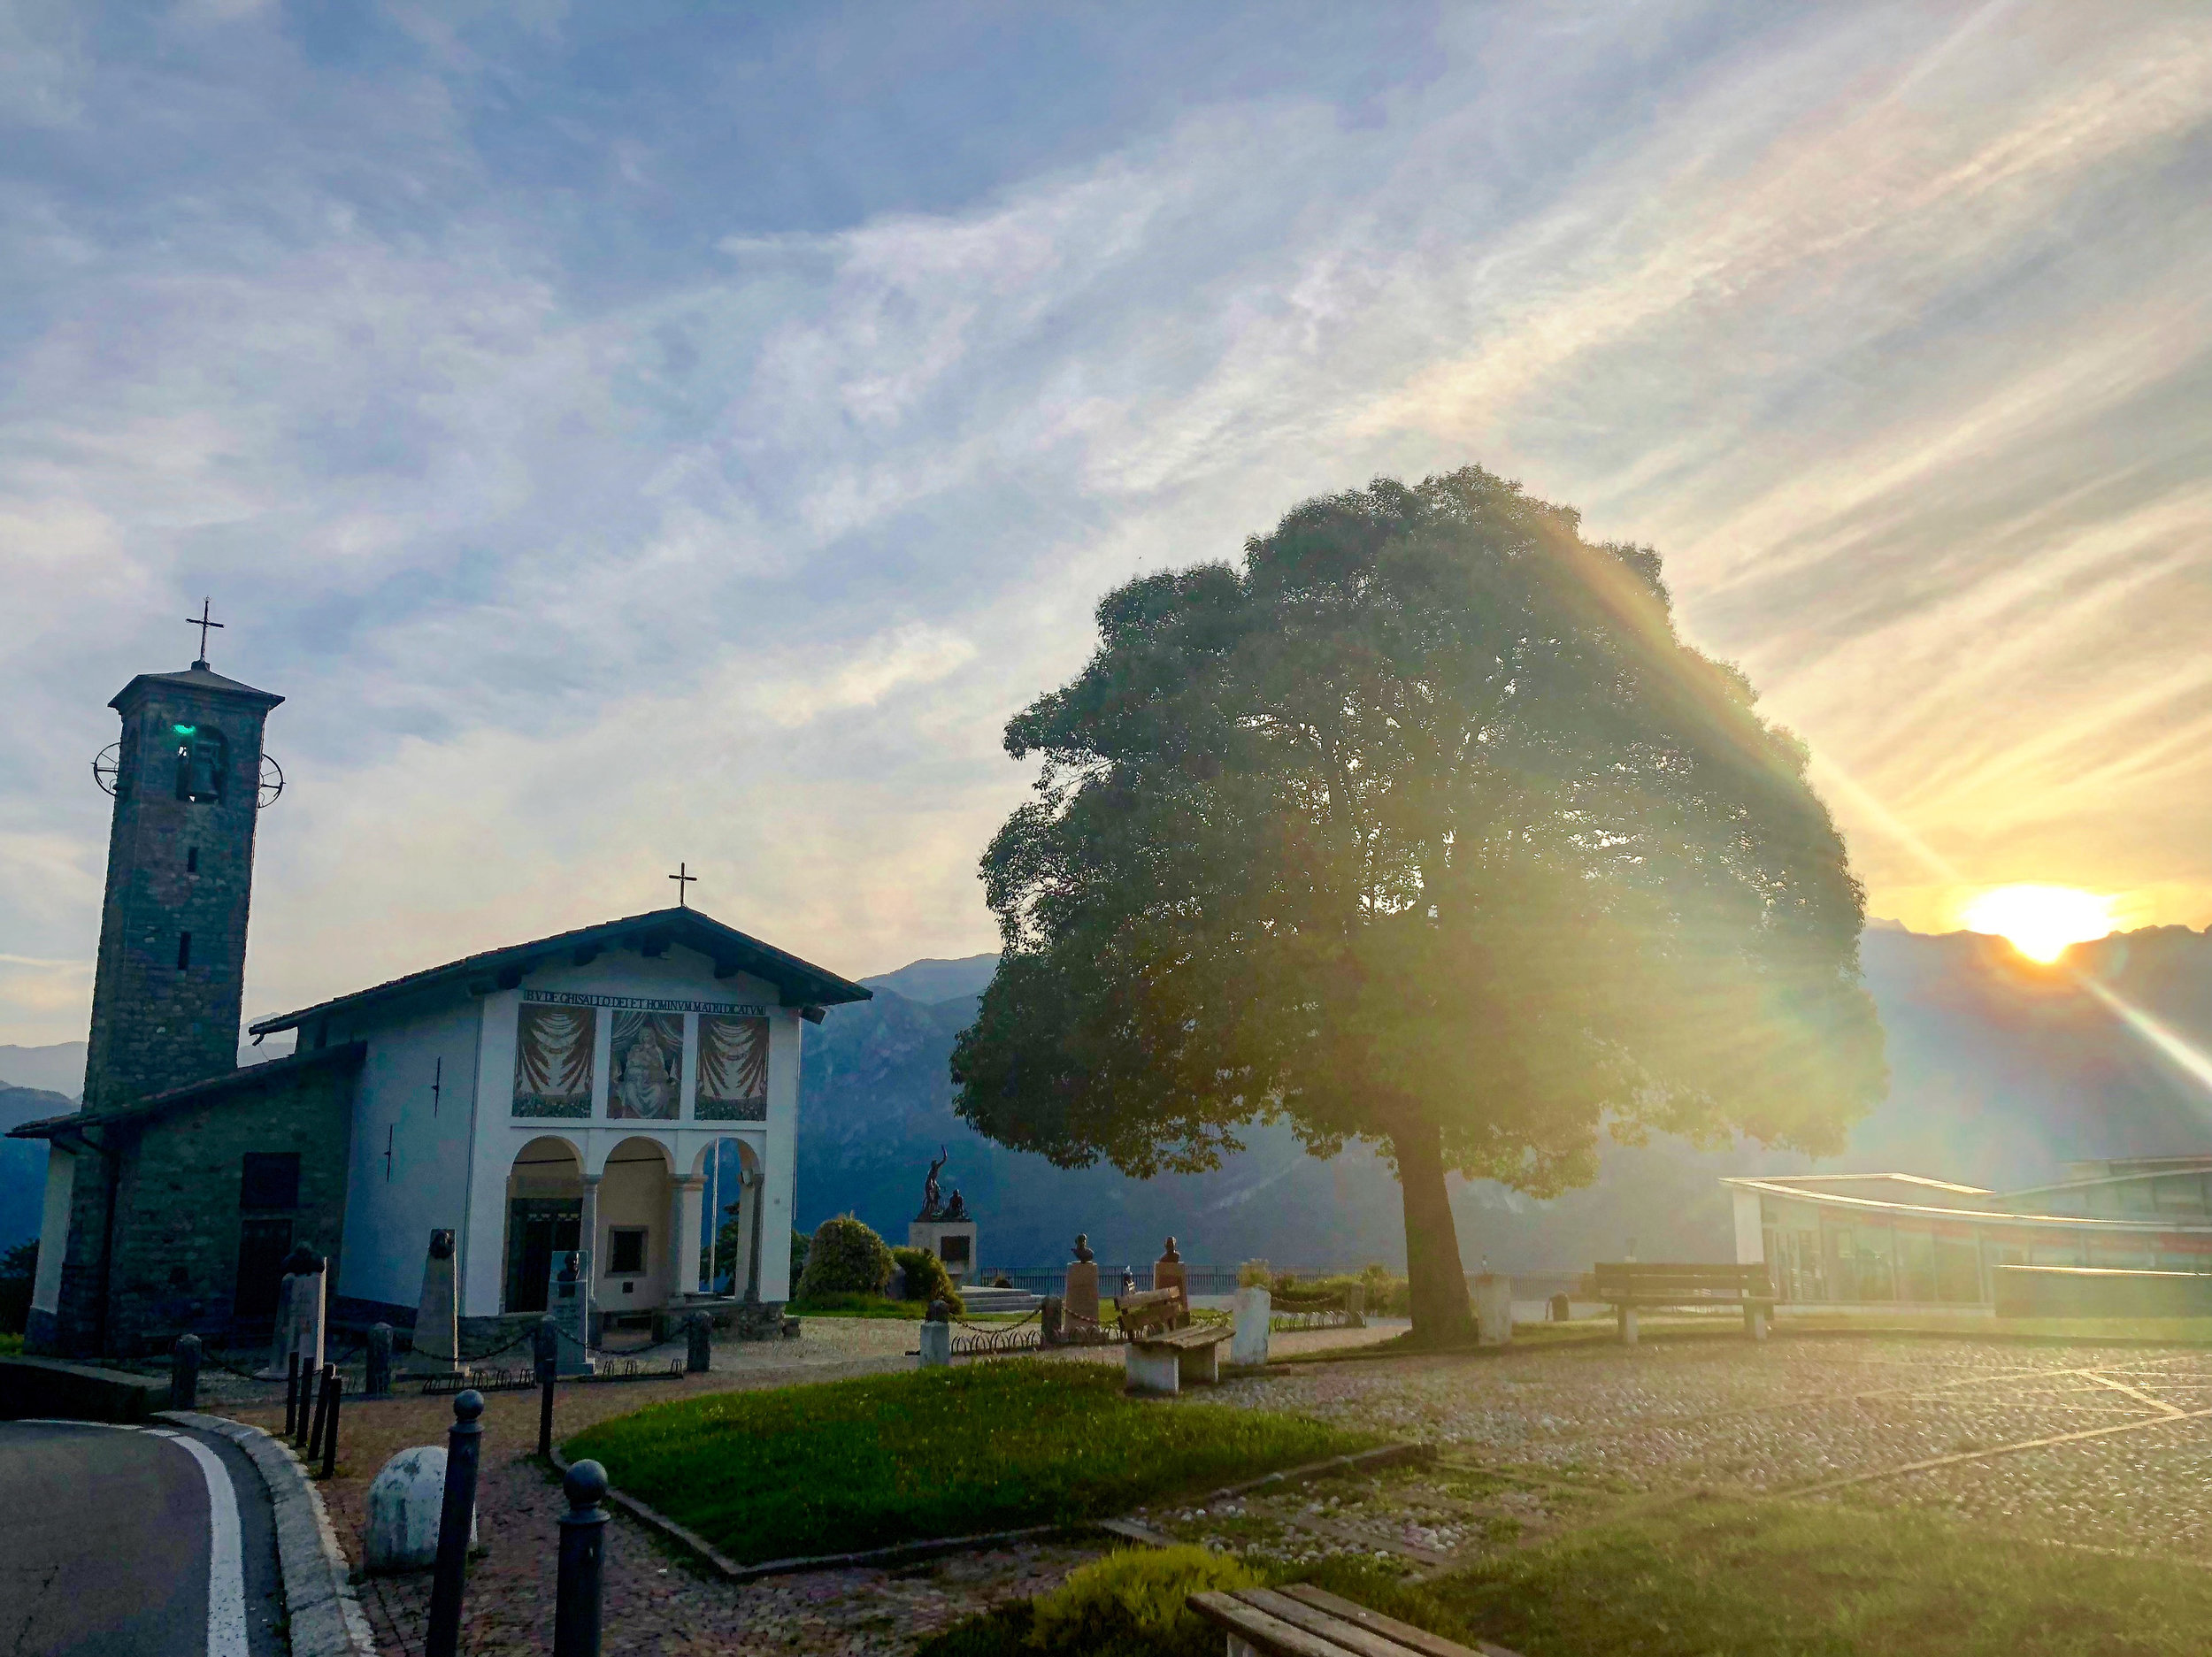 Just up the hill from Hotel Il Perlo is the Madonna del Ghisallo chapel, home to the Patron Saint of Cyclists.